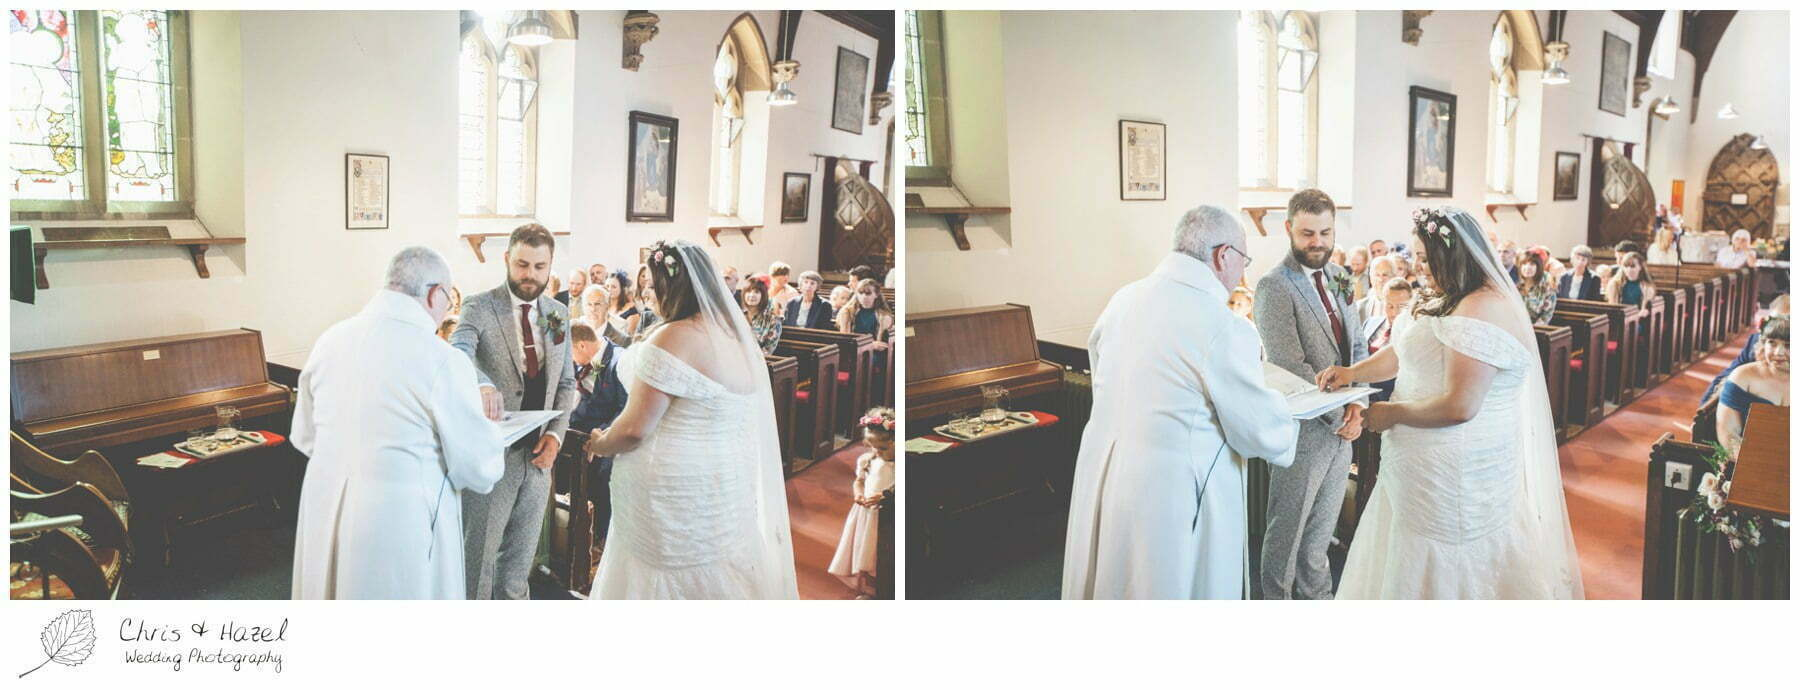 Ring Exchange, Bride and groom at altar, Hilperton Church, St Michael & All Angels' Church, Wedding Photography, Wiltshire Wedding Photographer Trowbridge, Chris and Hazel Wedding Photography